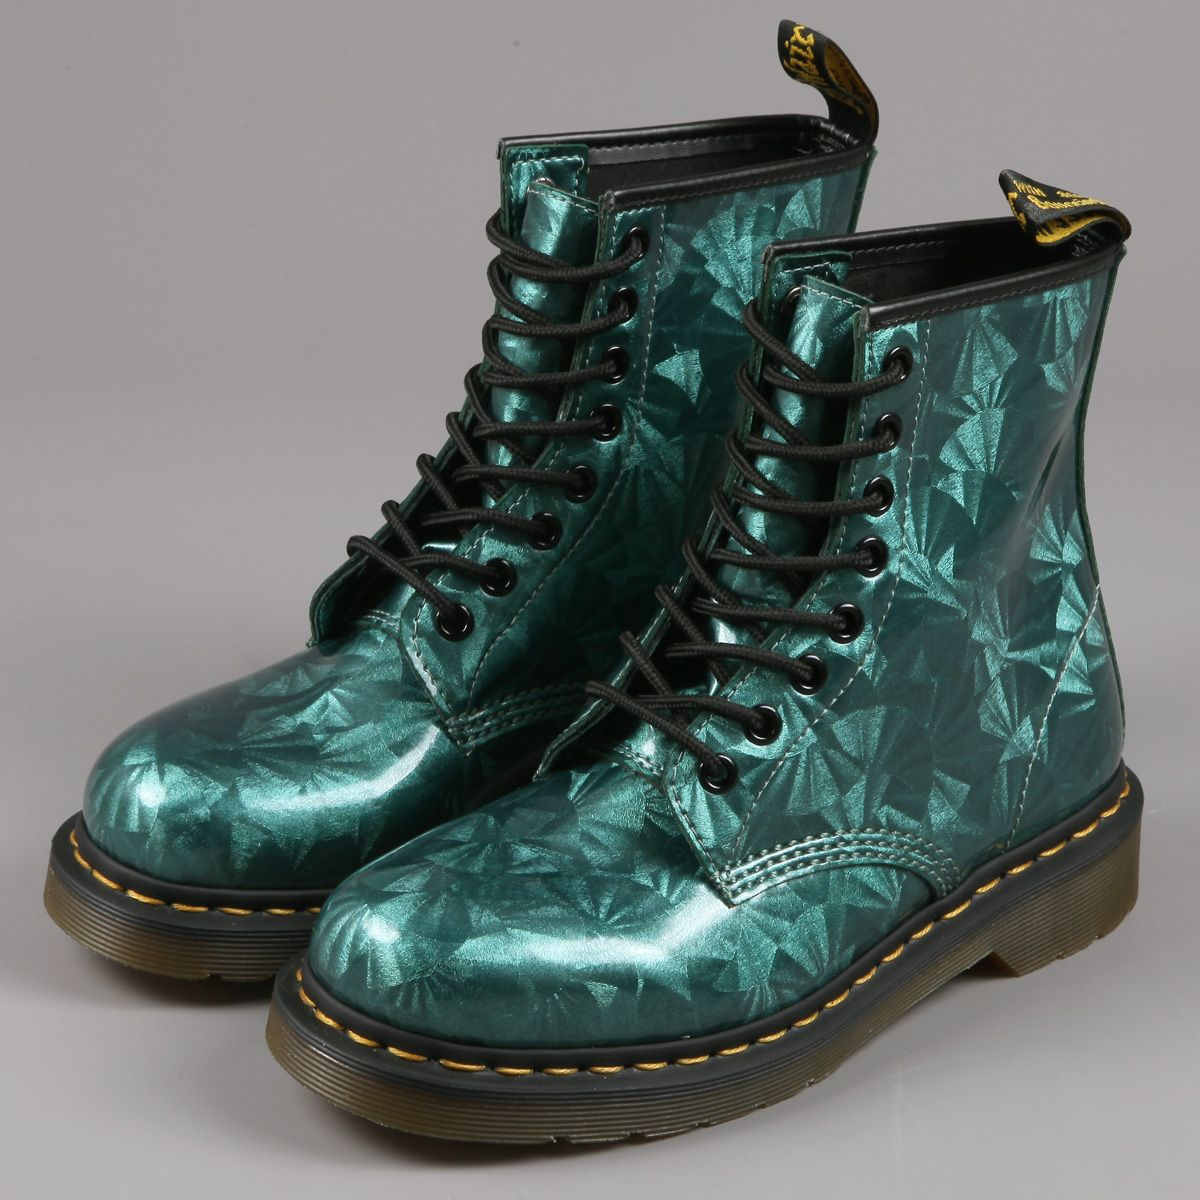 emerald green doc martens wanted pinterest doc martens emeralds and dr martens. Black Bedroom Furniture Sets. Home Design Ideas